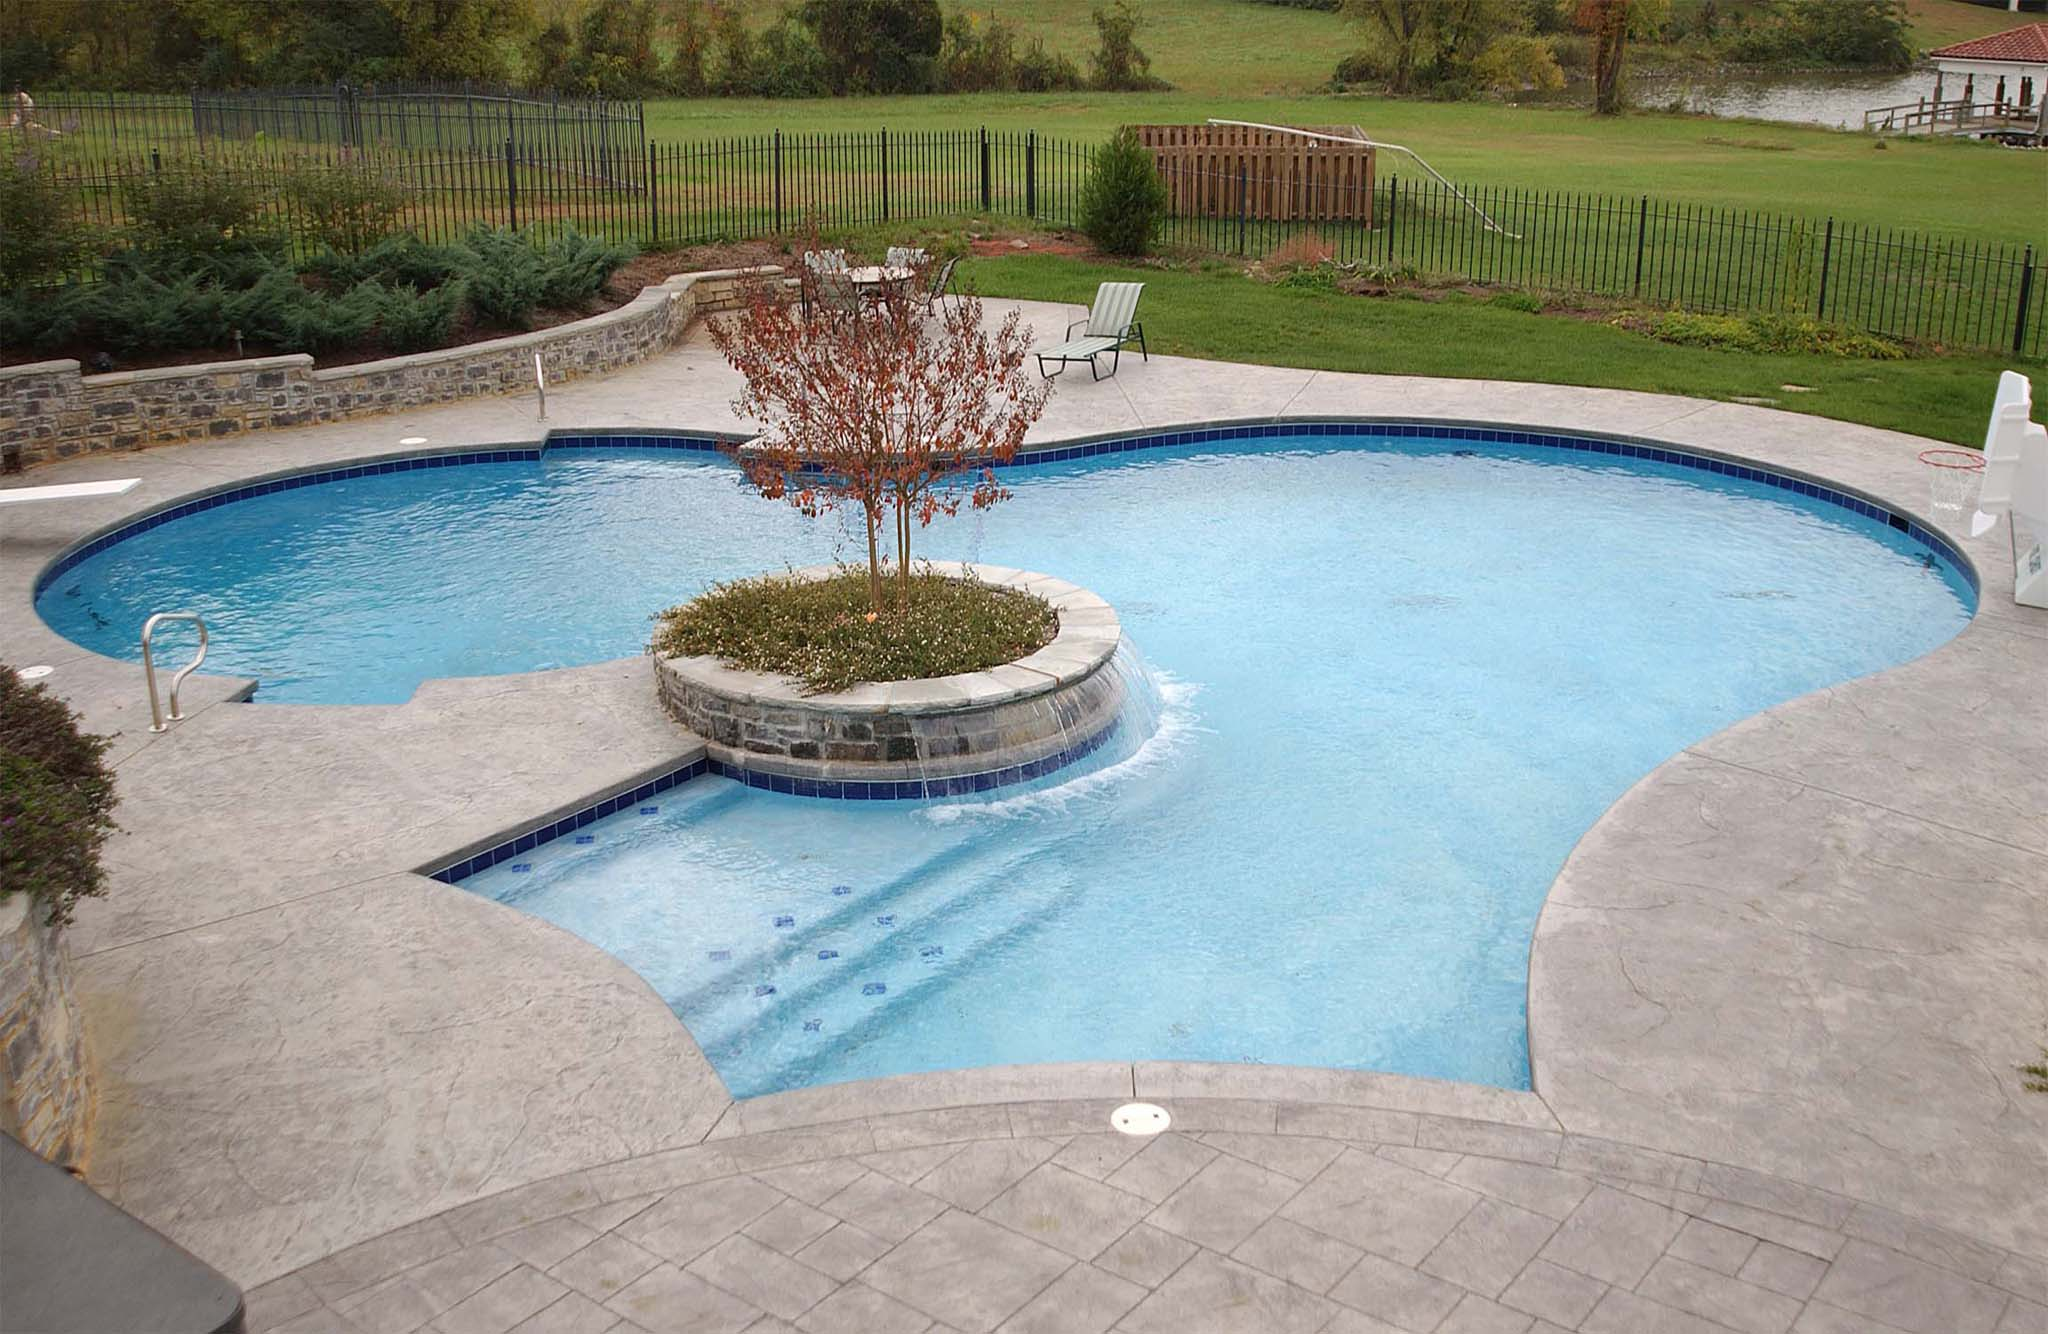 Save money on pool heating costs tipton pools knoxville for Pool design knoxville tn